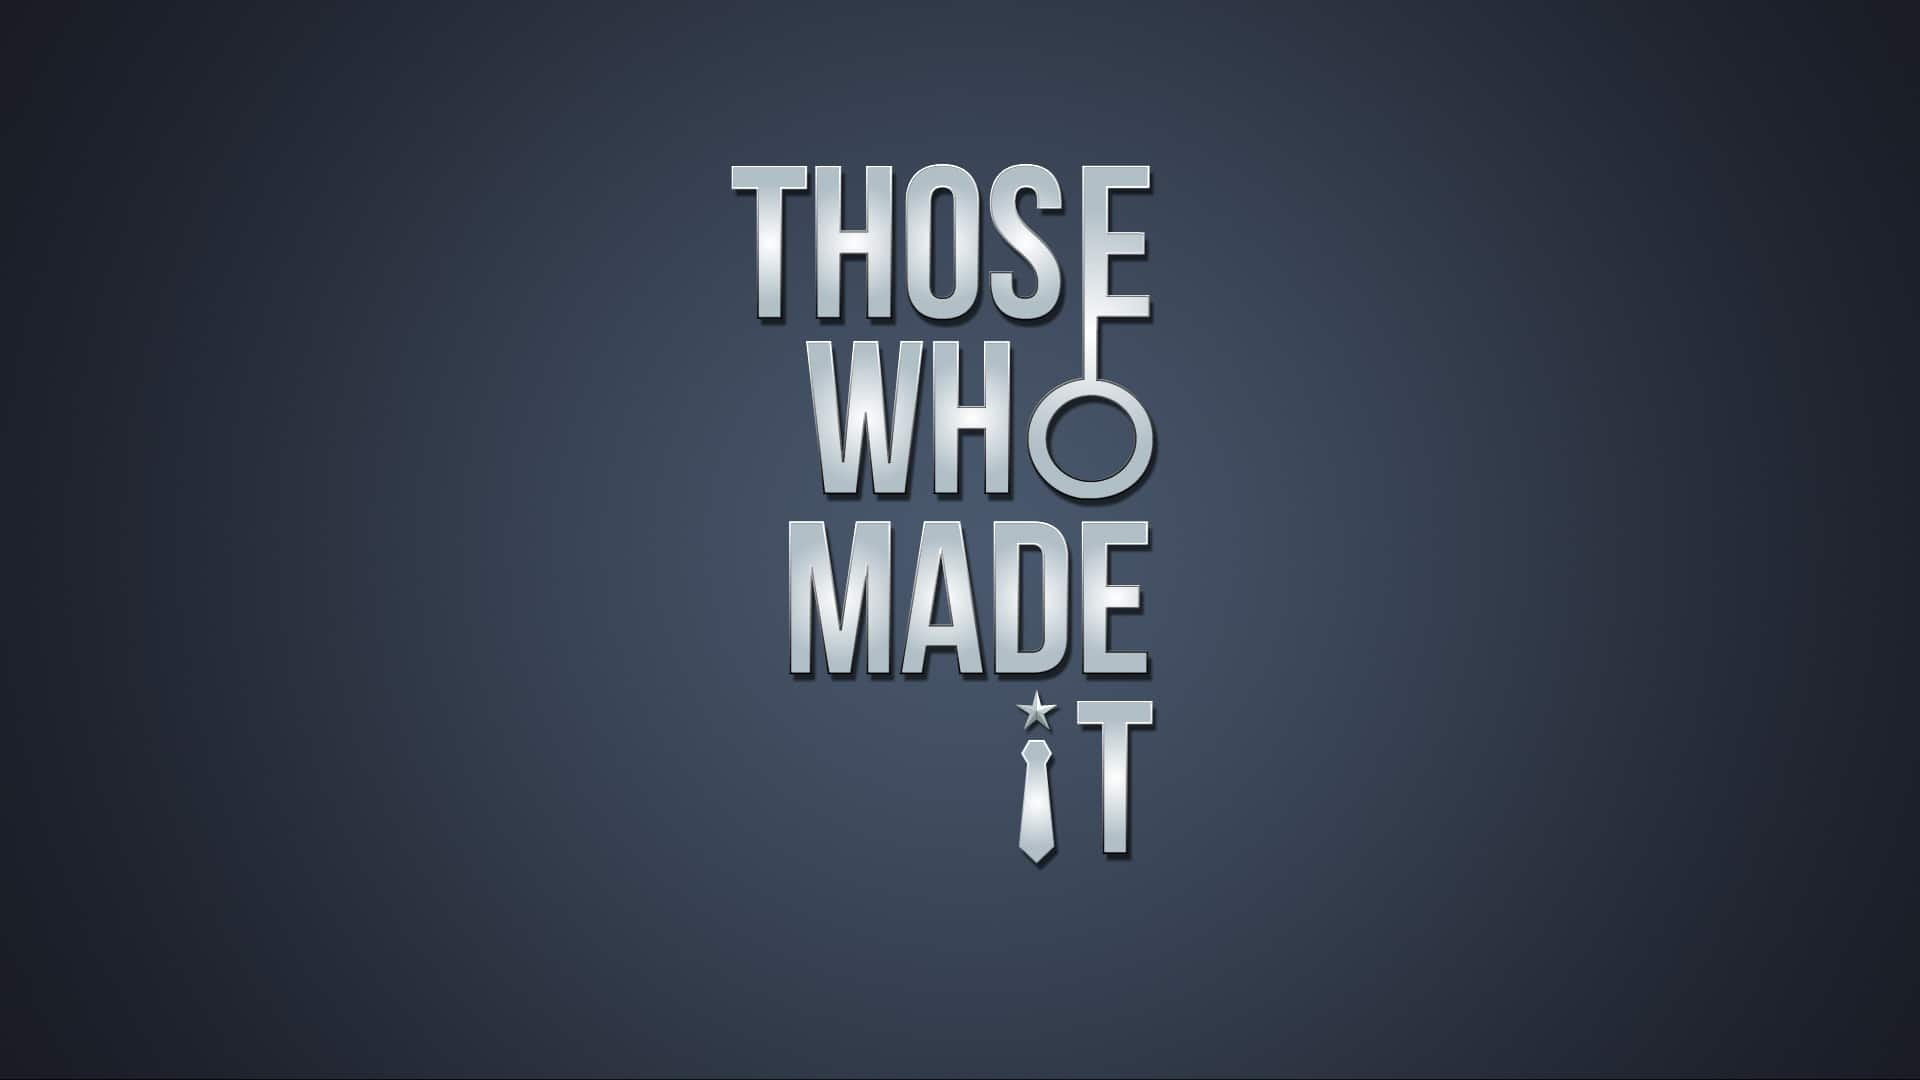 Those Who Made it